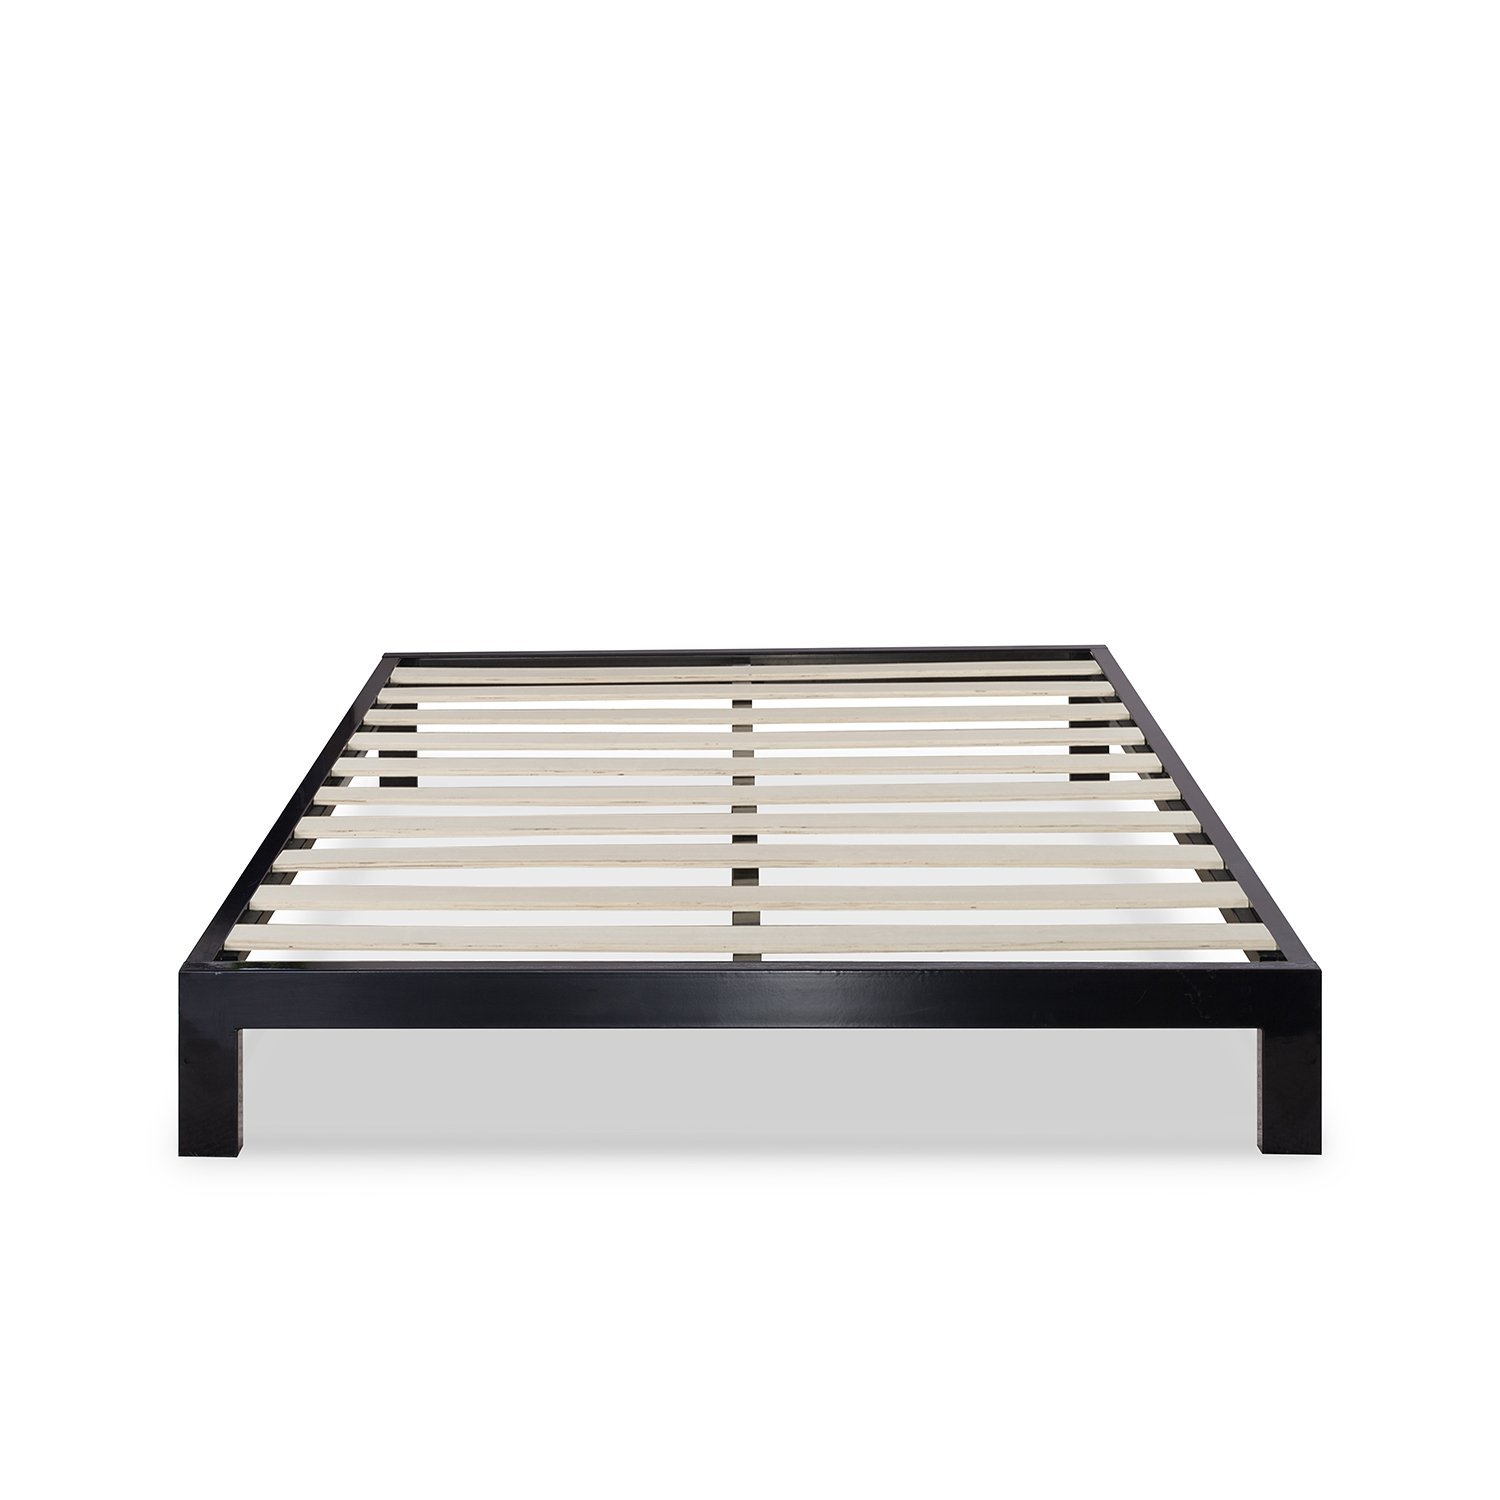 Inexpensive Full Size Mattress Top 10 Best Full Size Bed Frame Reviews 2019 Buying Guide